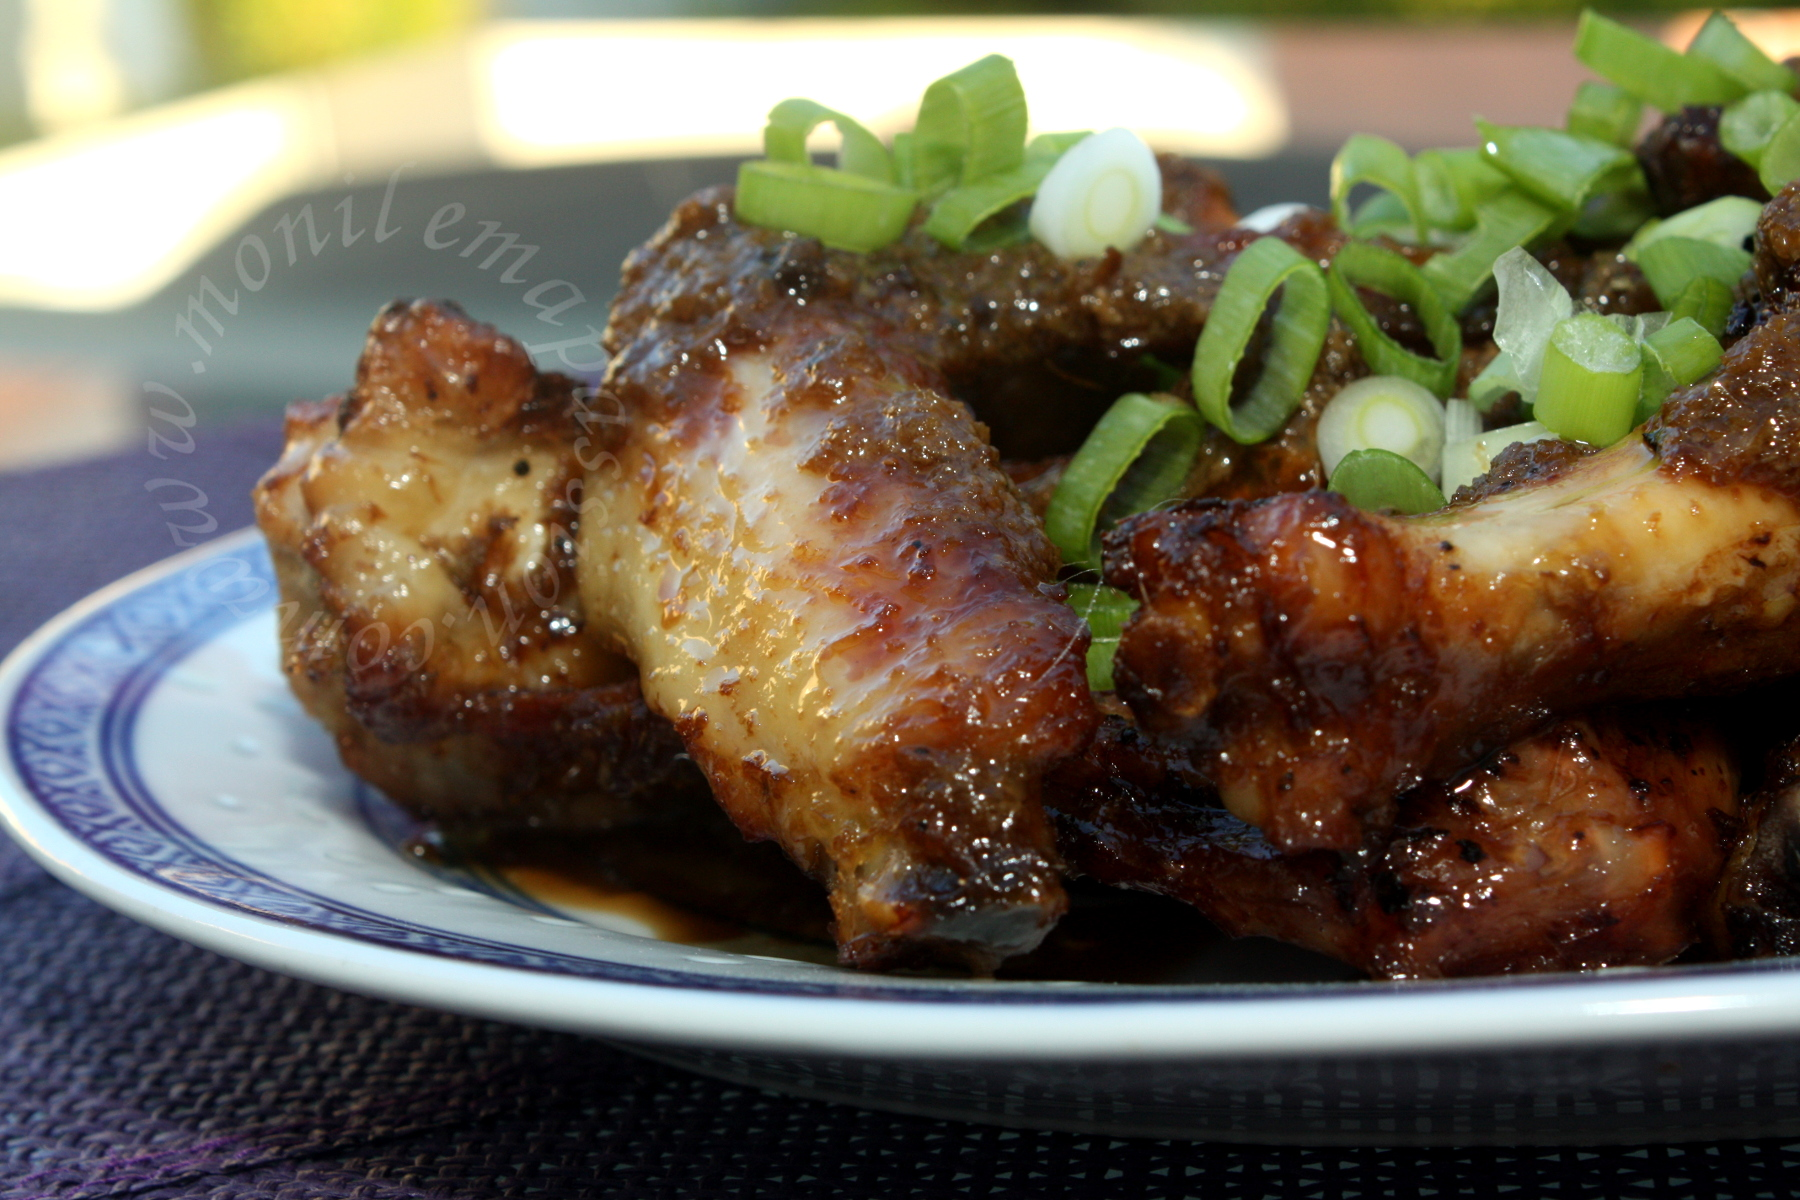 Ailes de poulet façon malaise - Malaysian style chicken wings